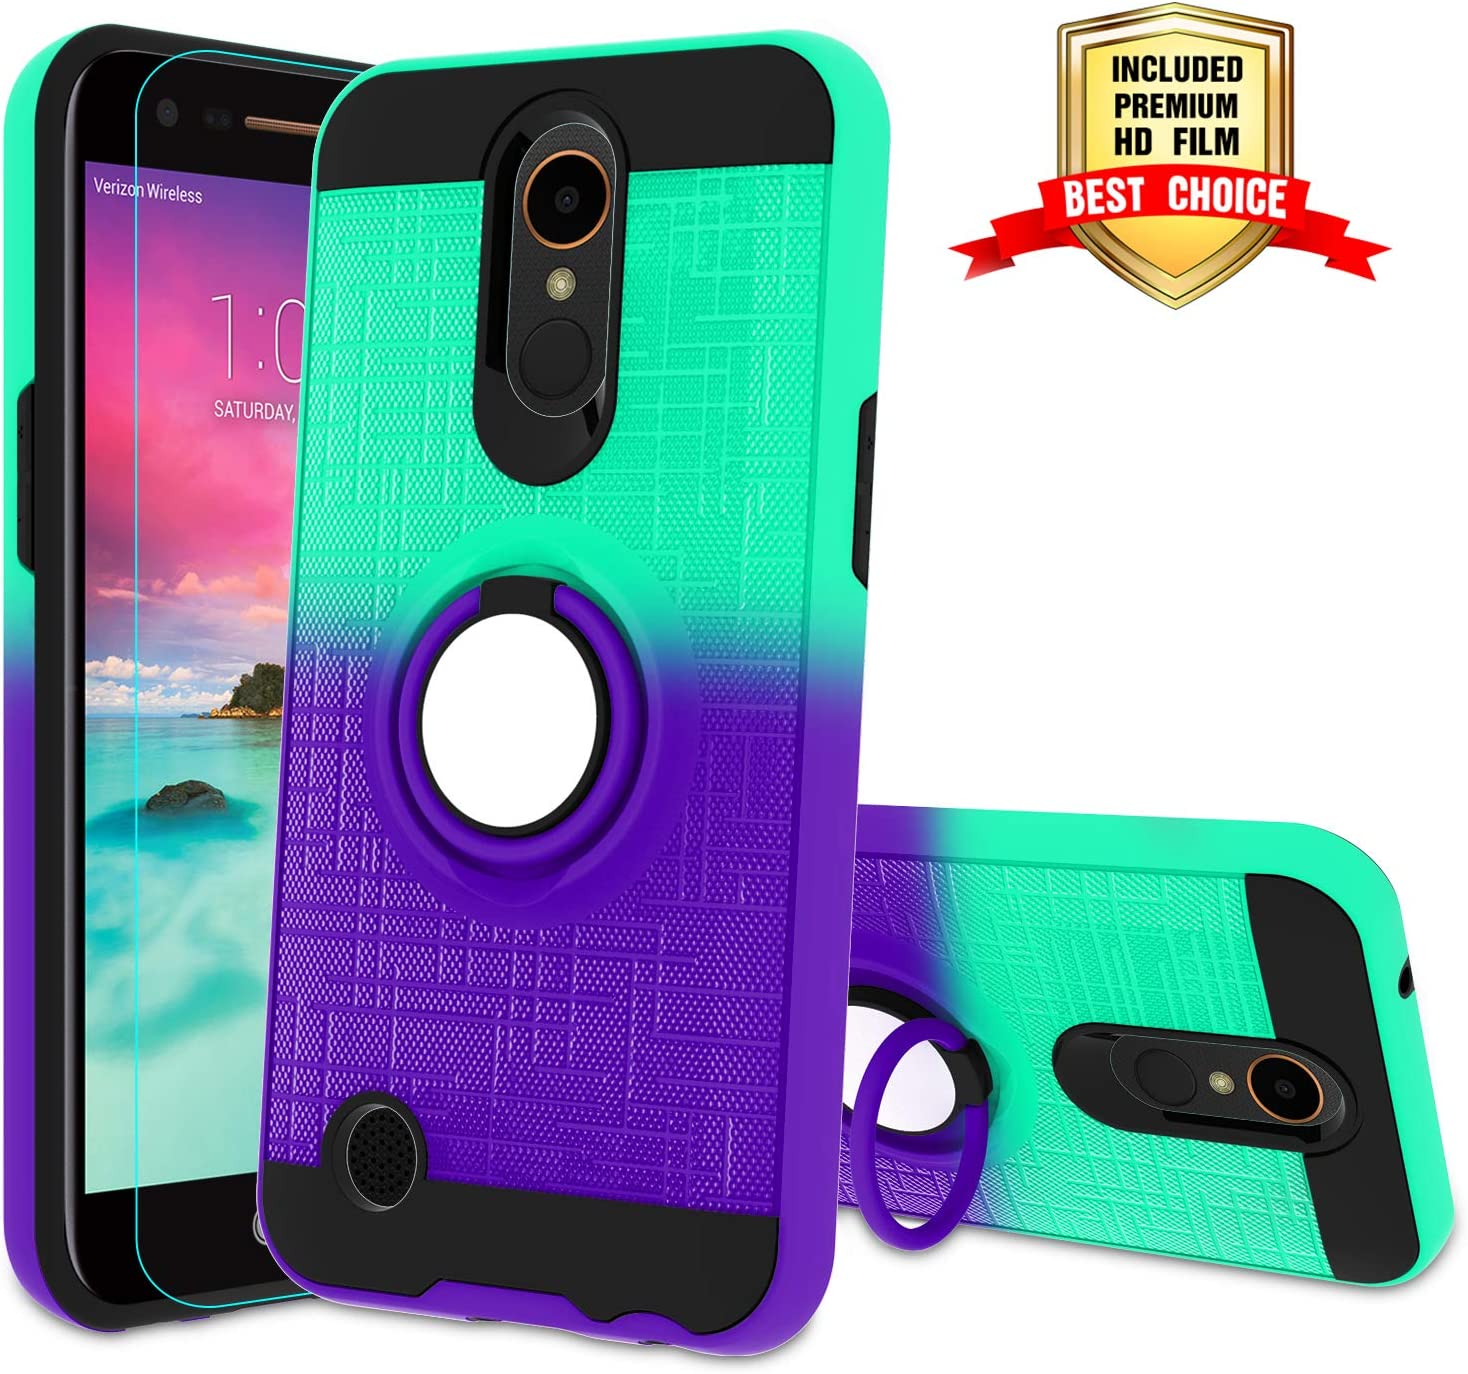 LG K20 Plus Case,LG K20 V, LG K10 2017, LG Harmony, LG Grace Phone Case with HD Screen Protector,Atump 360 Degree Rotating Ring Holder Kickstand Bracket Cover Phone Case for LG LV5 Mint/Purple